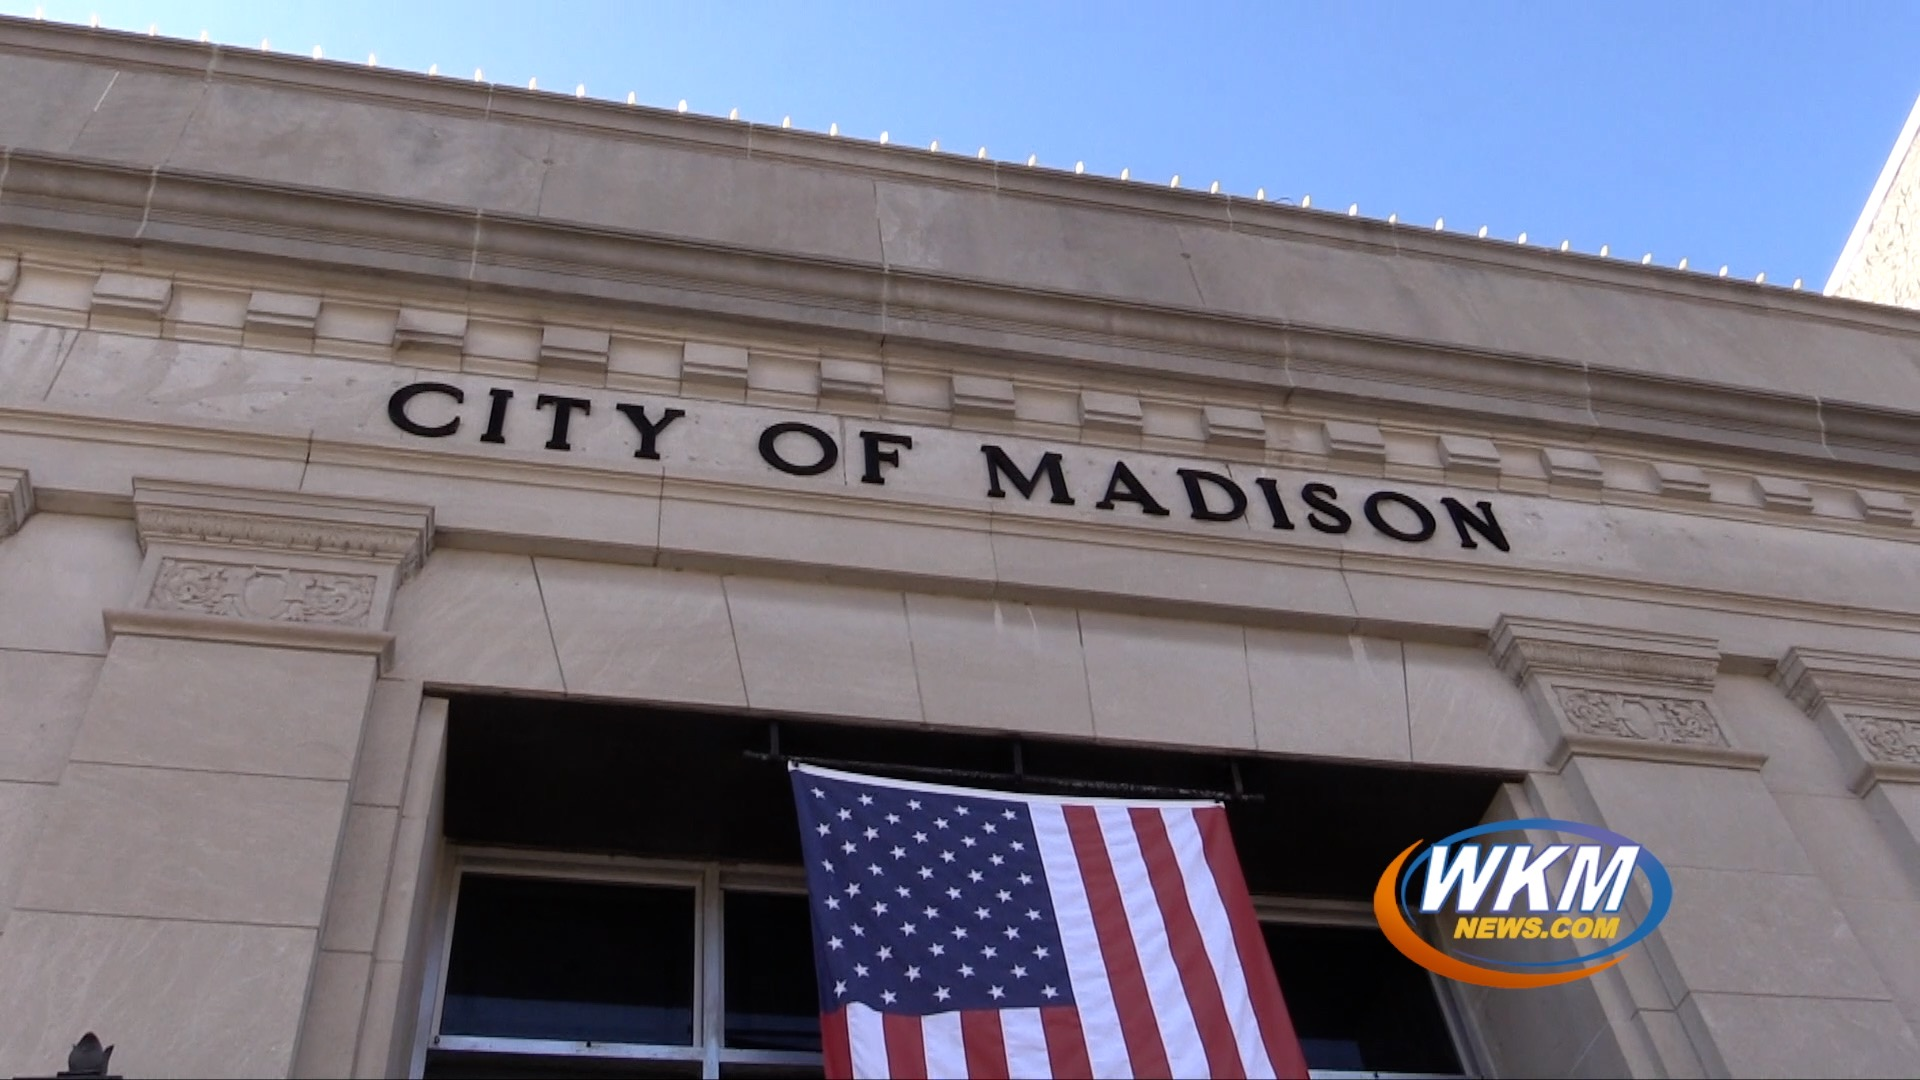 City of Madison Develops Outreach Program for Elderly and Homebound